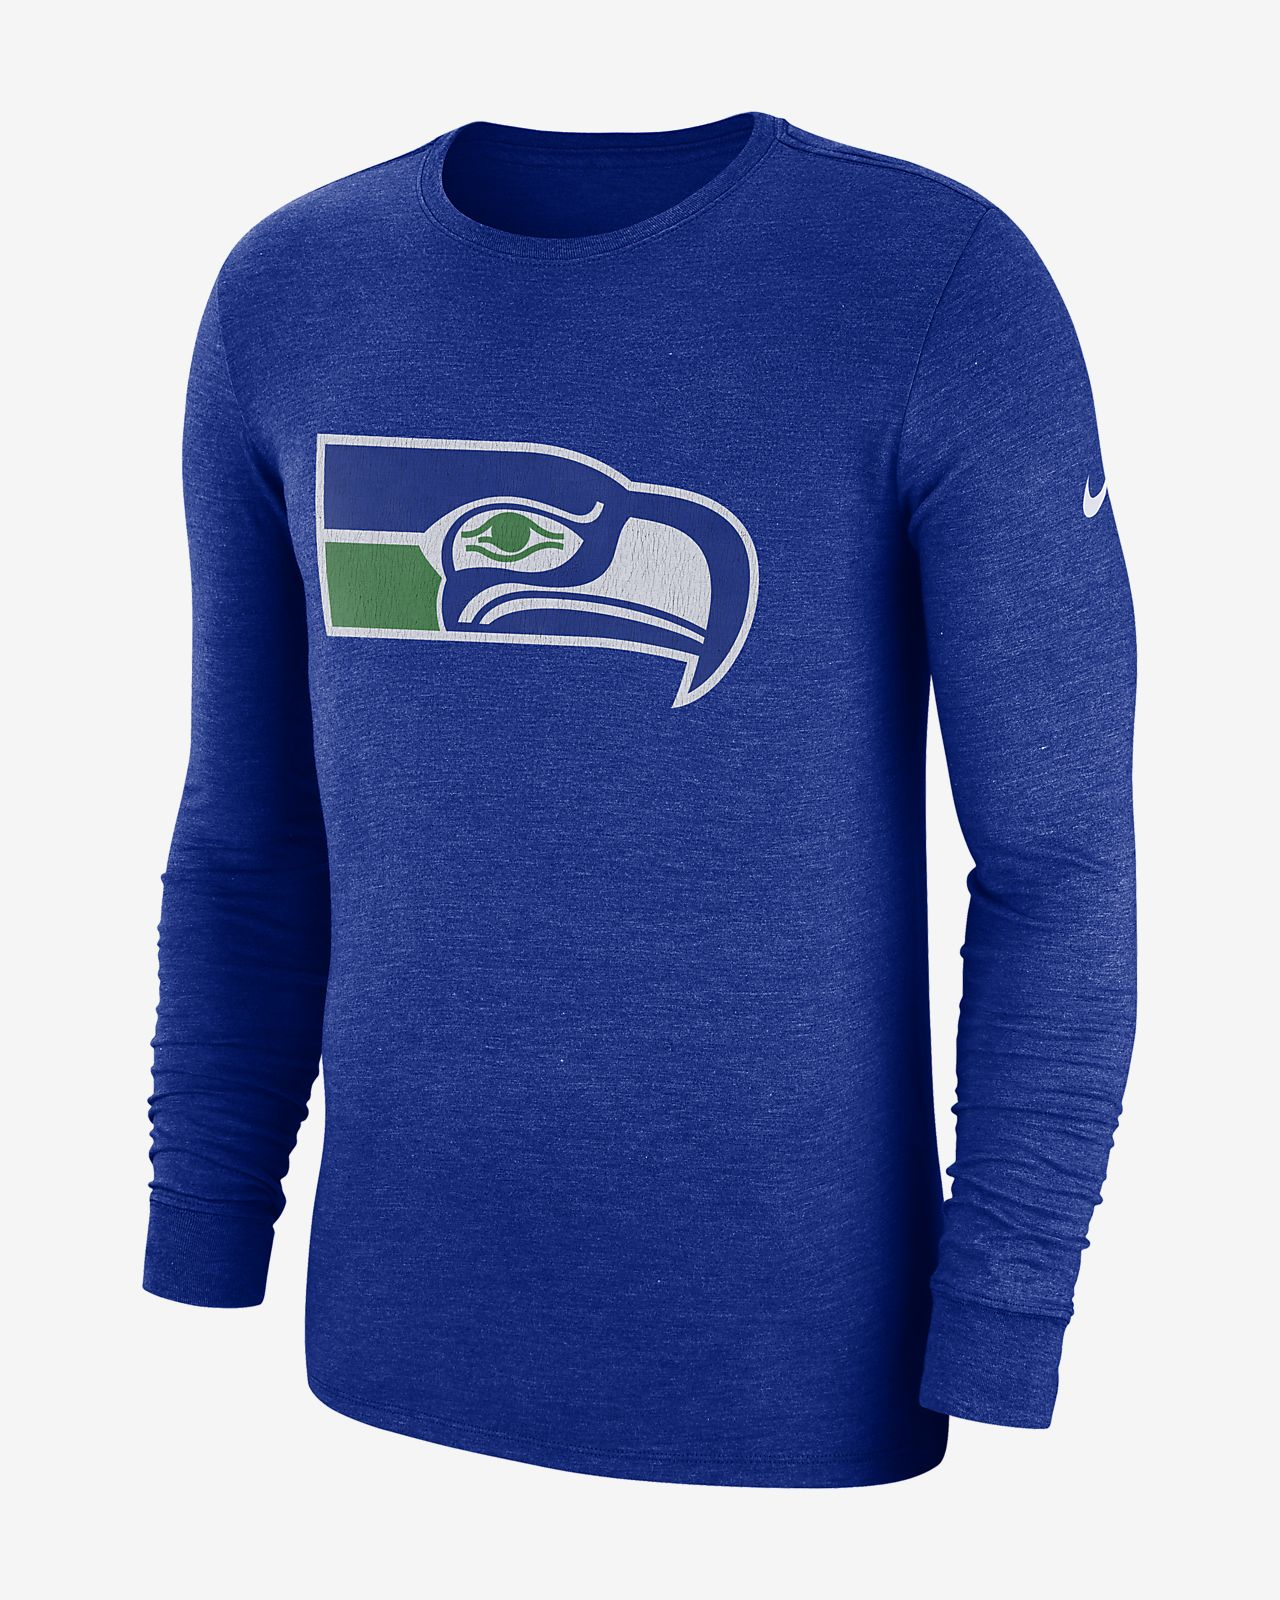 1e9588d87 Nike (NFL Seahawks) Men s Tri-Blend Long Sleeve T-Shirt. Nike.com